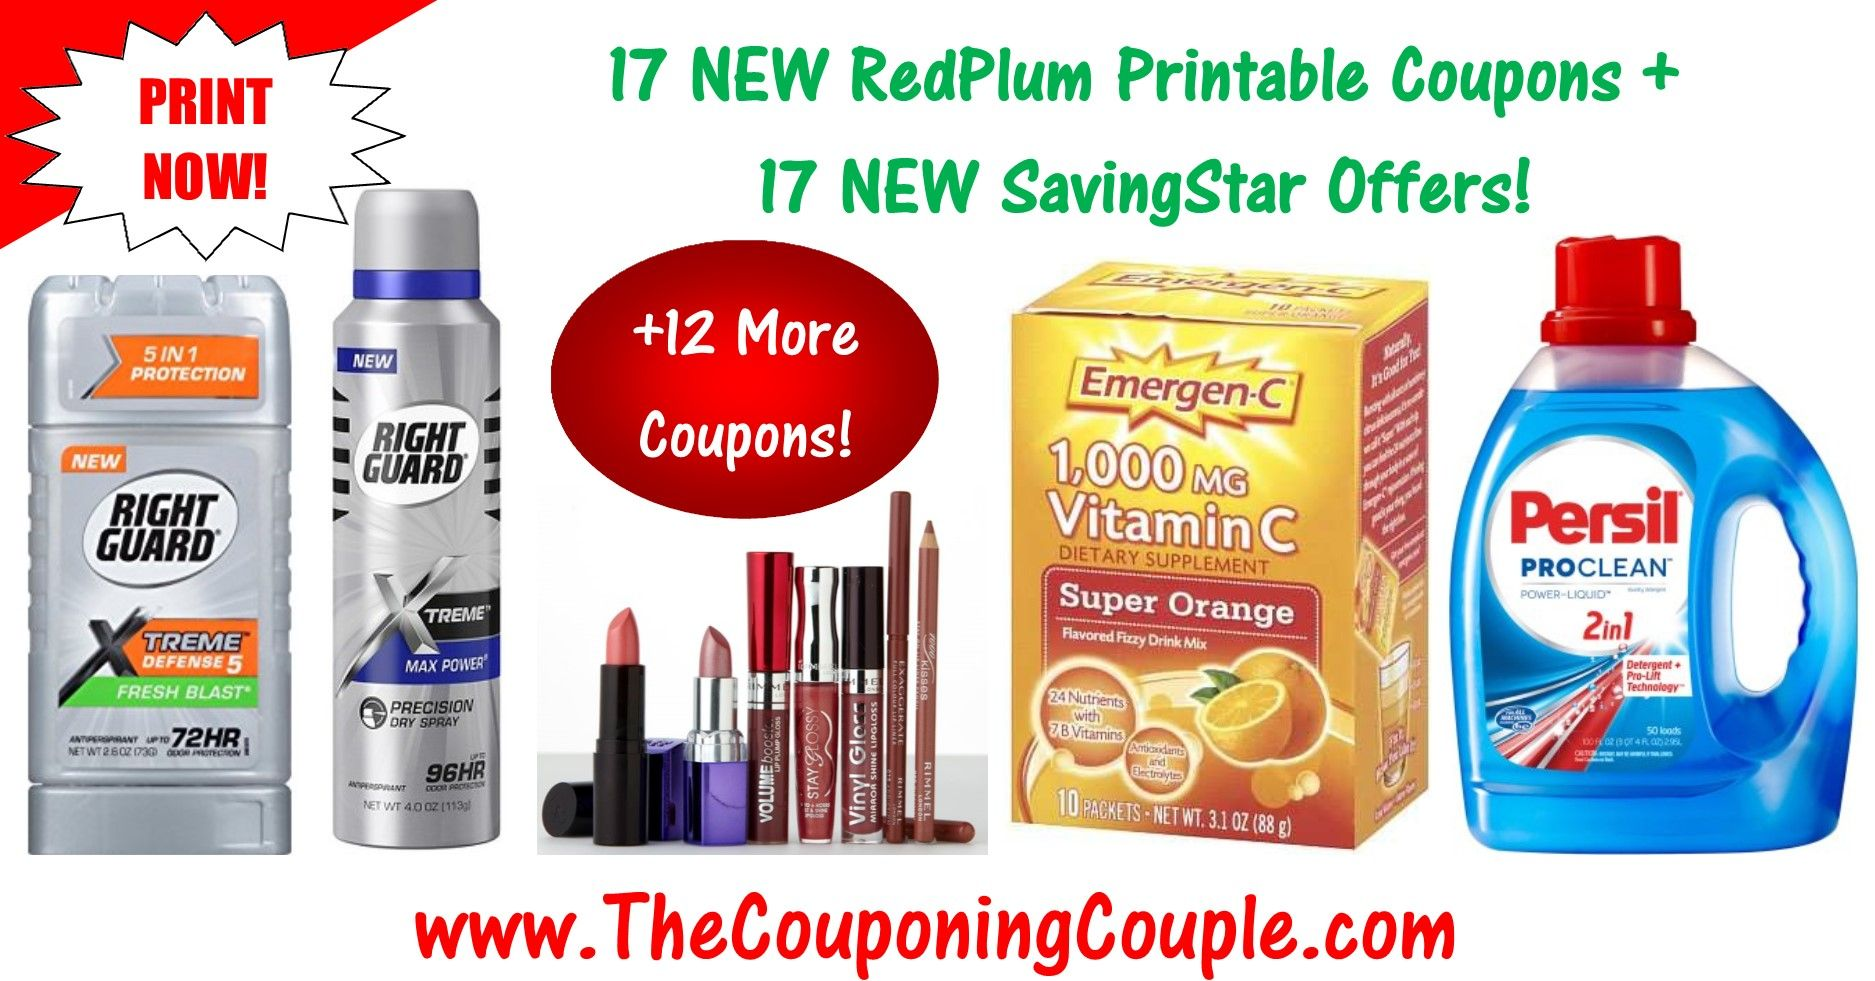 10 New Redplum Printable Coupons 20 New Savingstar